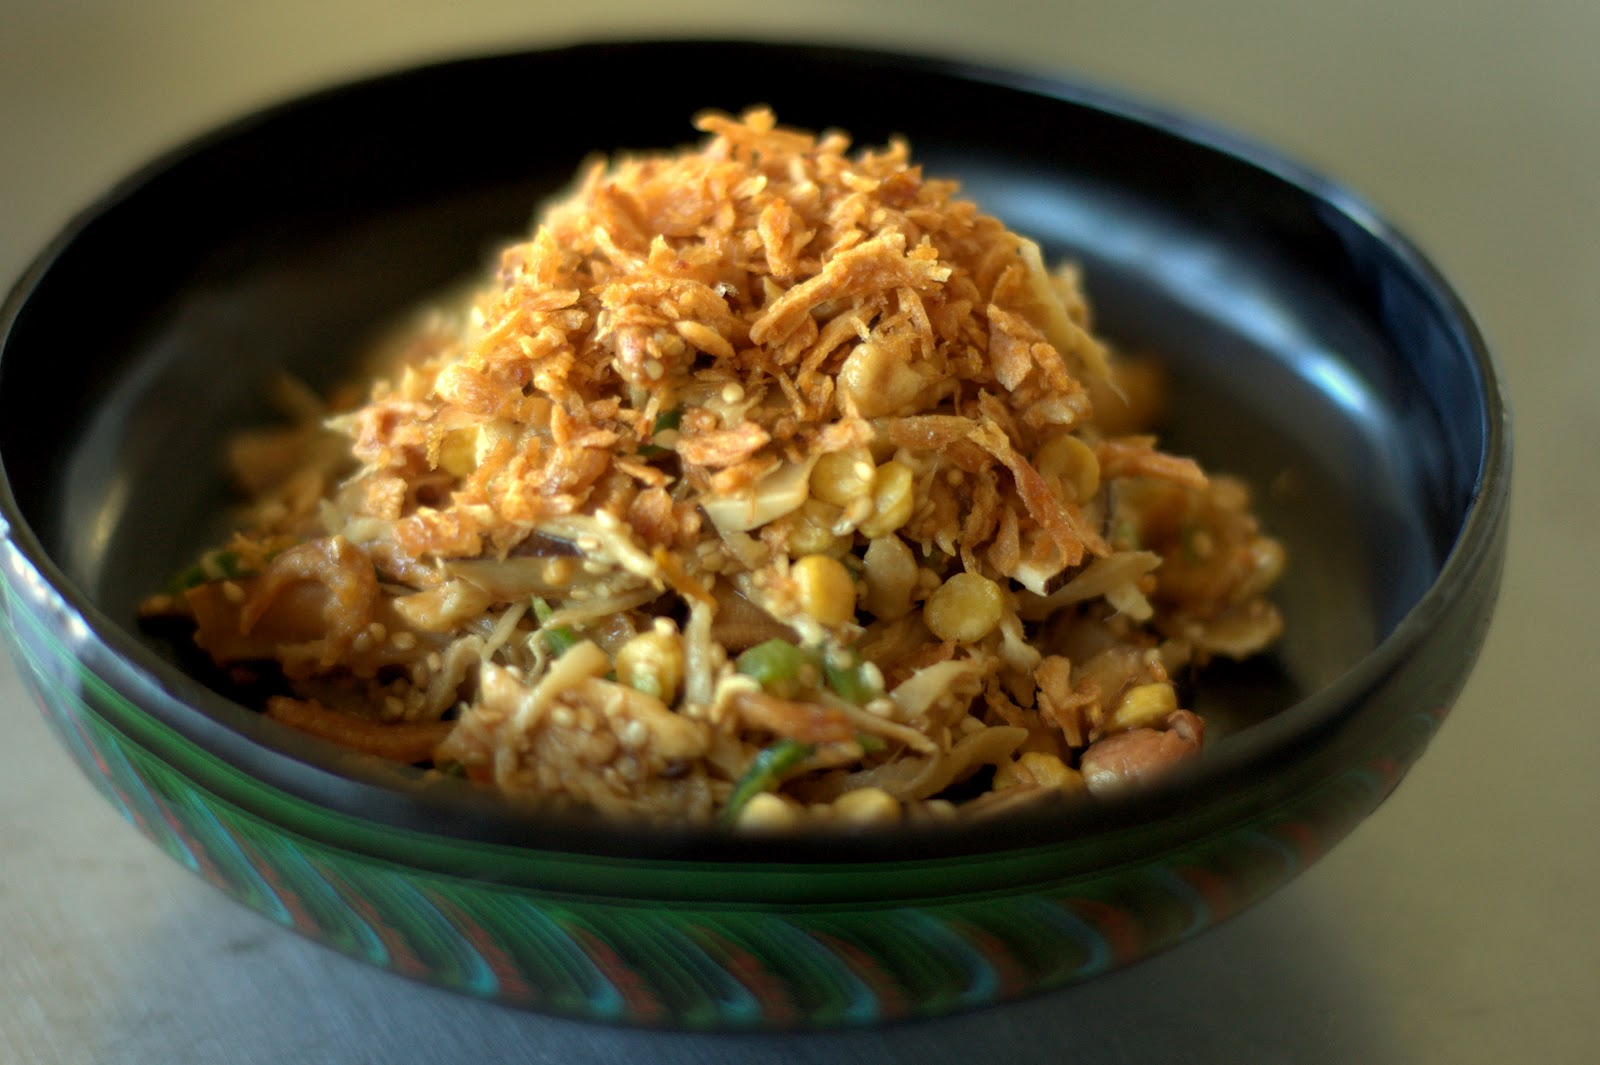 Jinn thoke burmese ginger salad recipe my favorite burmese salad is jinn thoke a surprisingly quick and easy ginger based salad thats absolutely delicious and refreshing even for someone like forumfinder Gallery